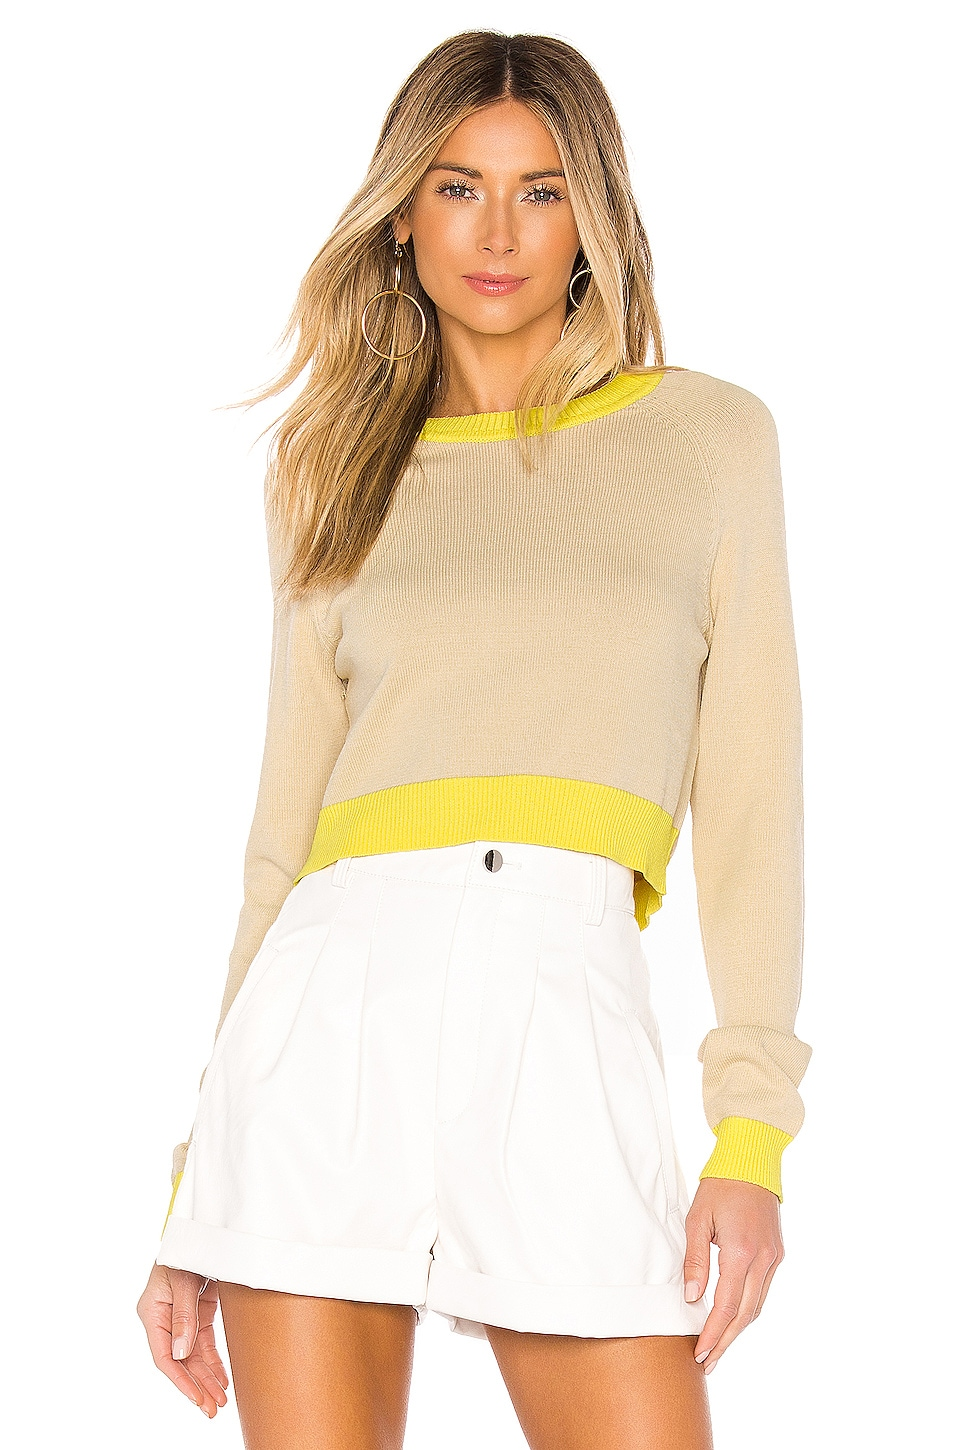 L'Academie Endrino Sweater in Nude & Yellow